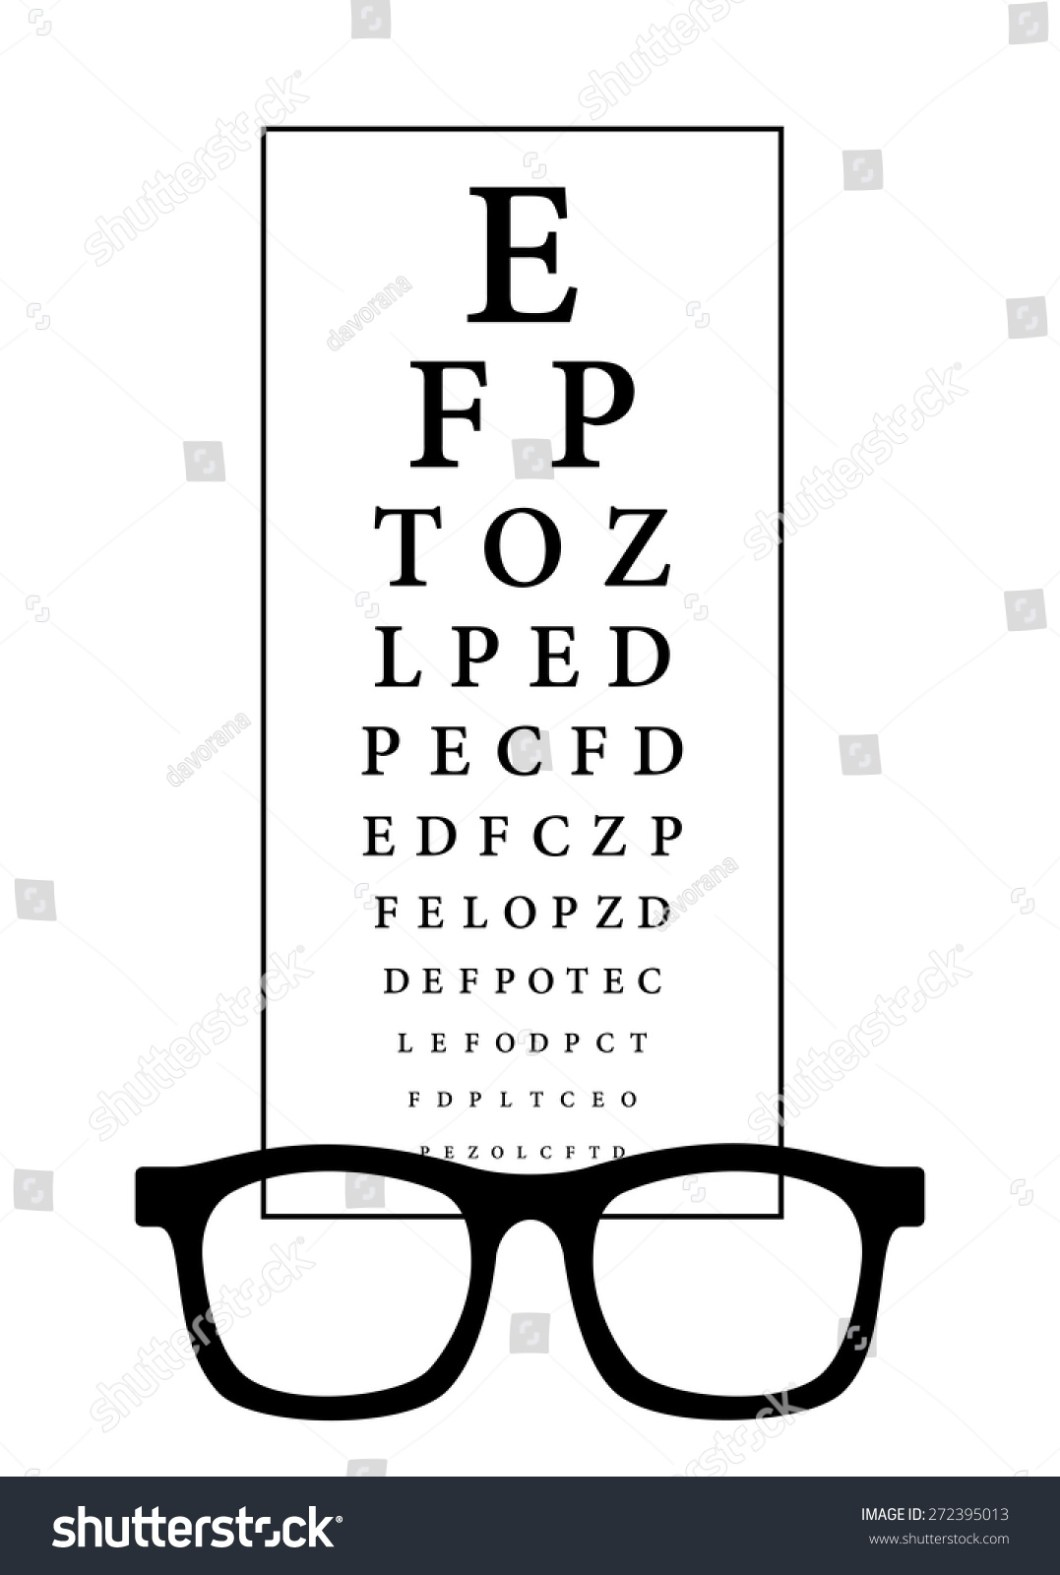 Eye exam chart pdf choice image free any chart examples snellen eye chart online images chart design ideas jaeger j2 eye test chart image collections chart nvjuhfo Gallery